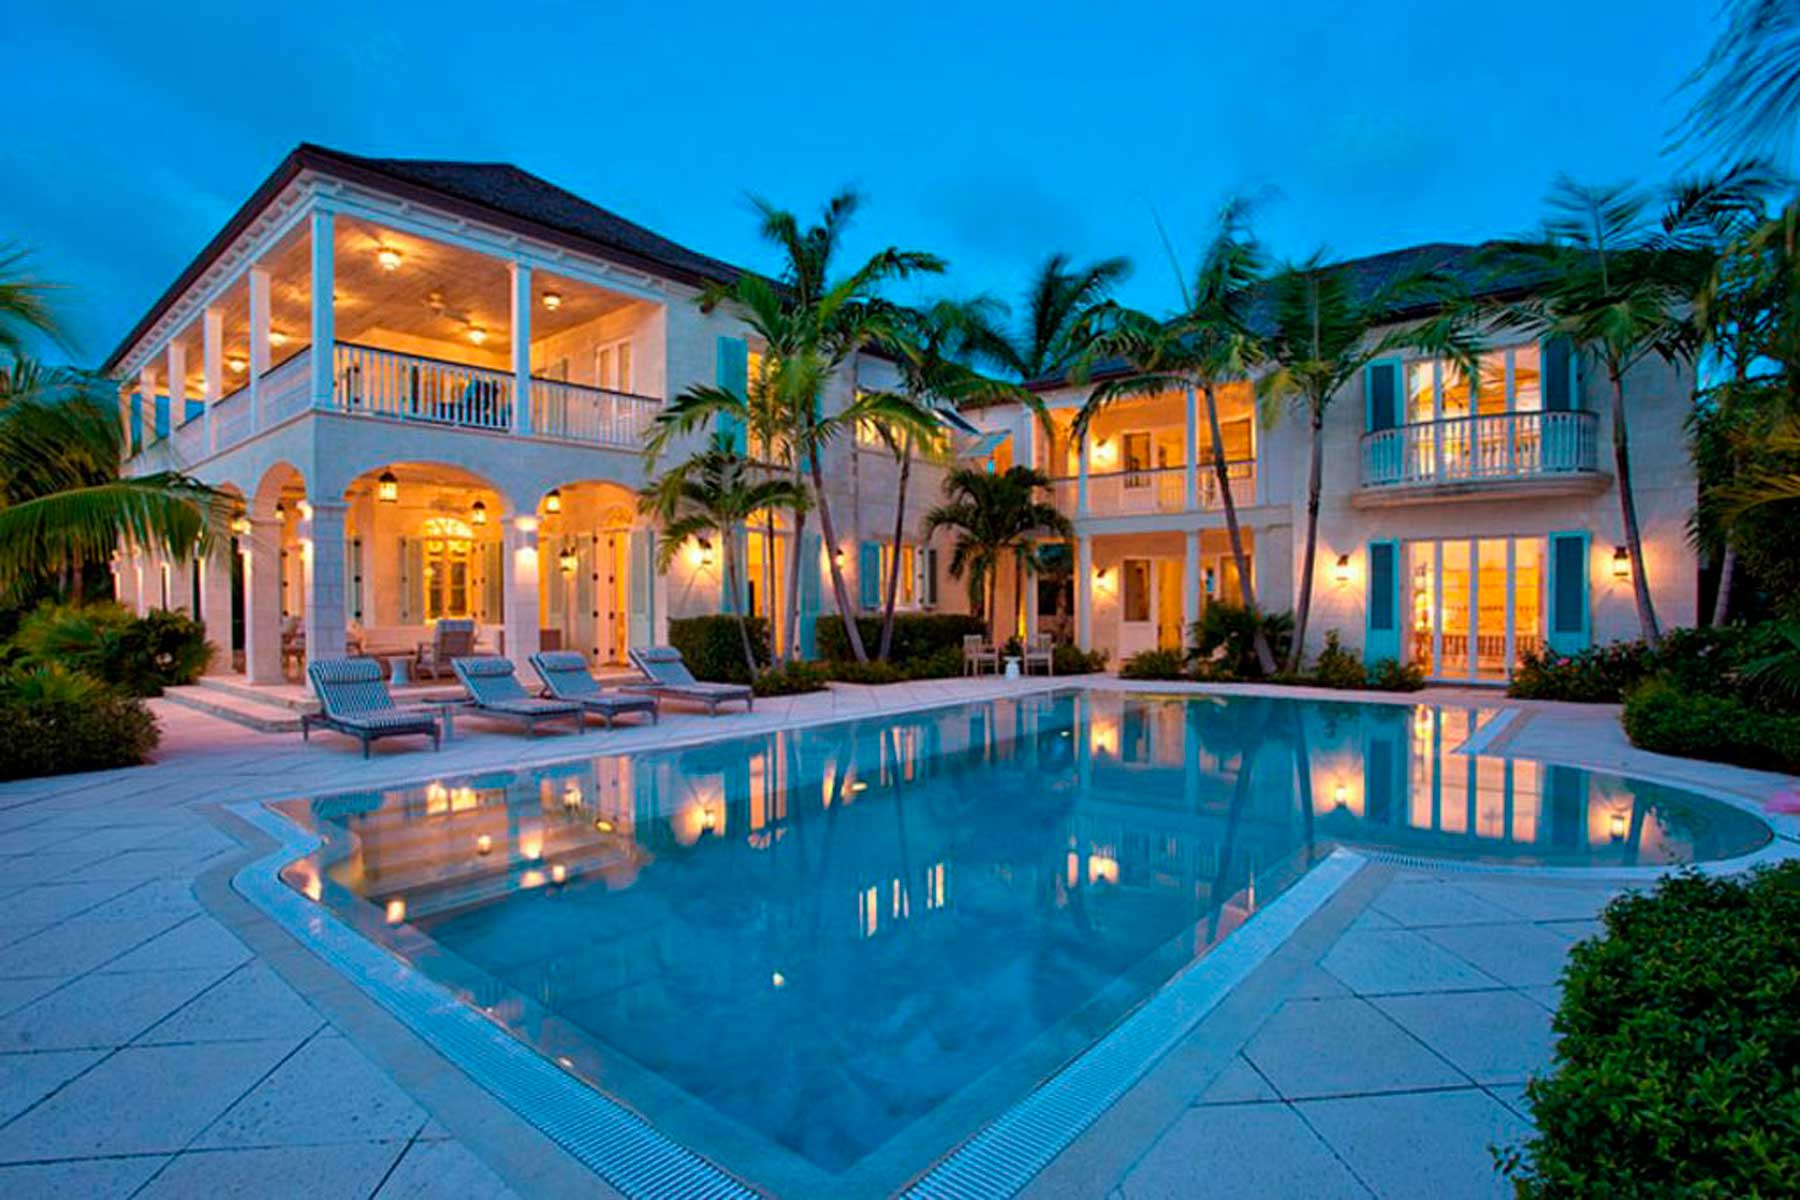 Private villa and pool at night in Turks and Caicos at Grace Bay